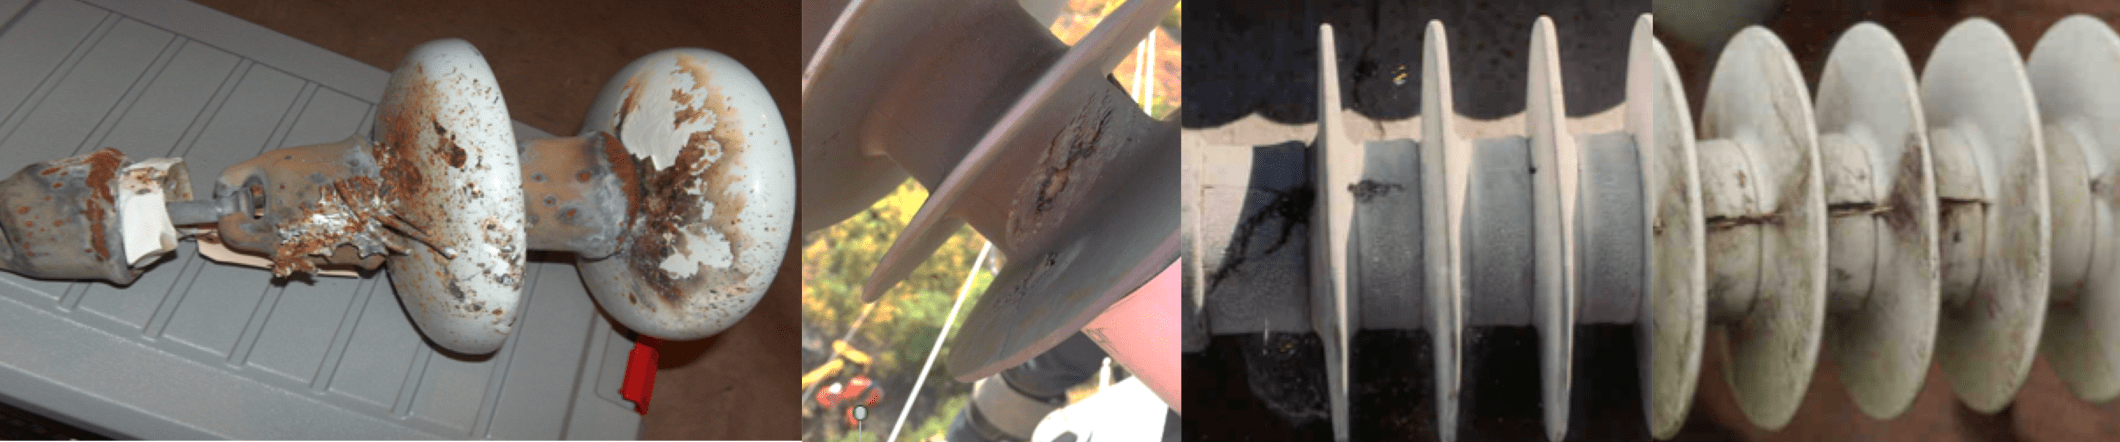 transmission insulation Practical Guidelines for Visual Inspection & Condition Assessment of Transmission Insulation Examples of damage from lightning strike flashover and flashunder